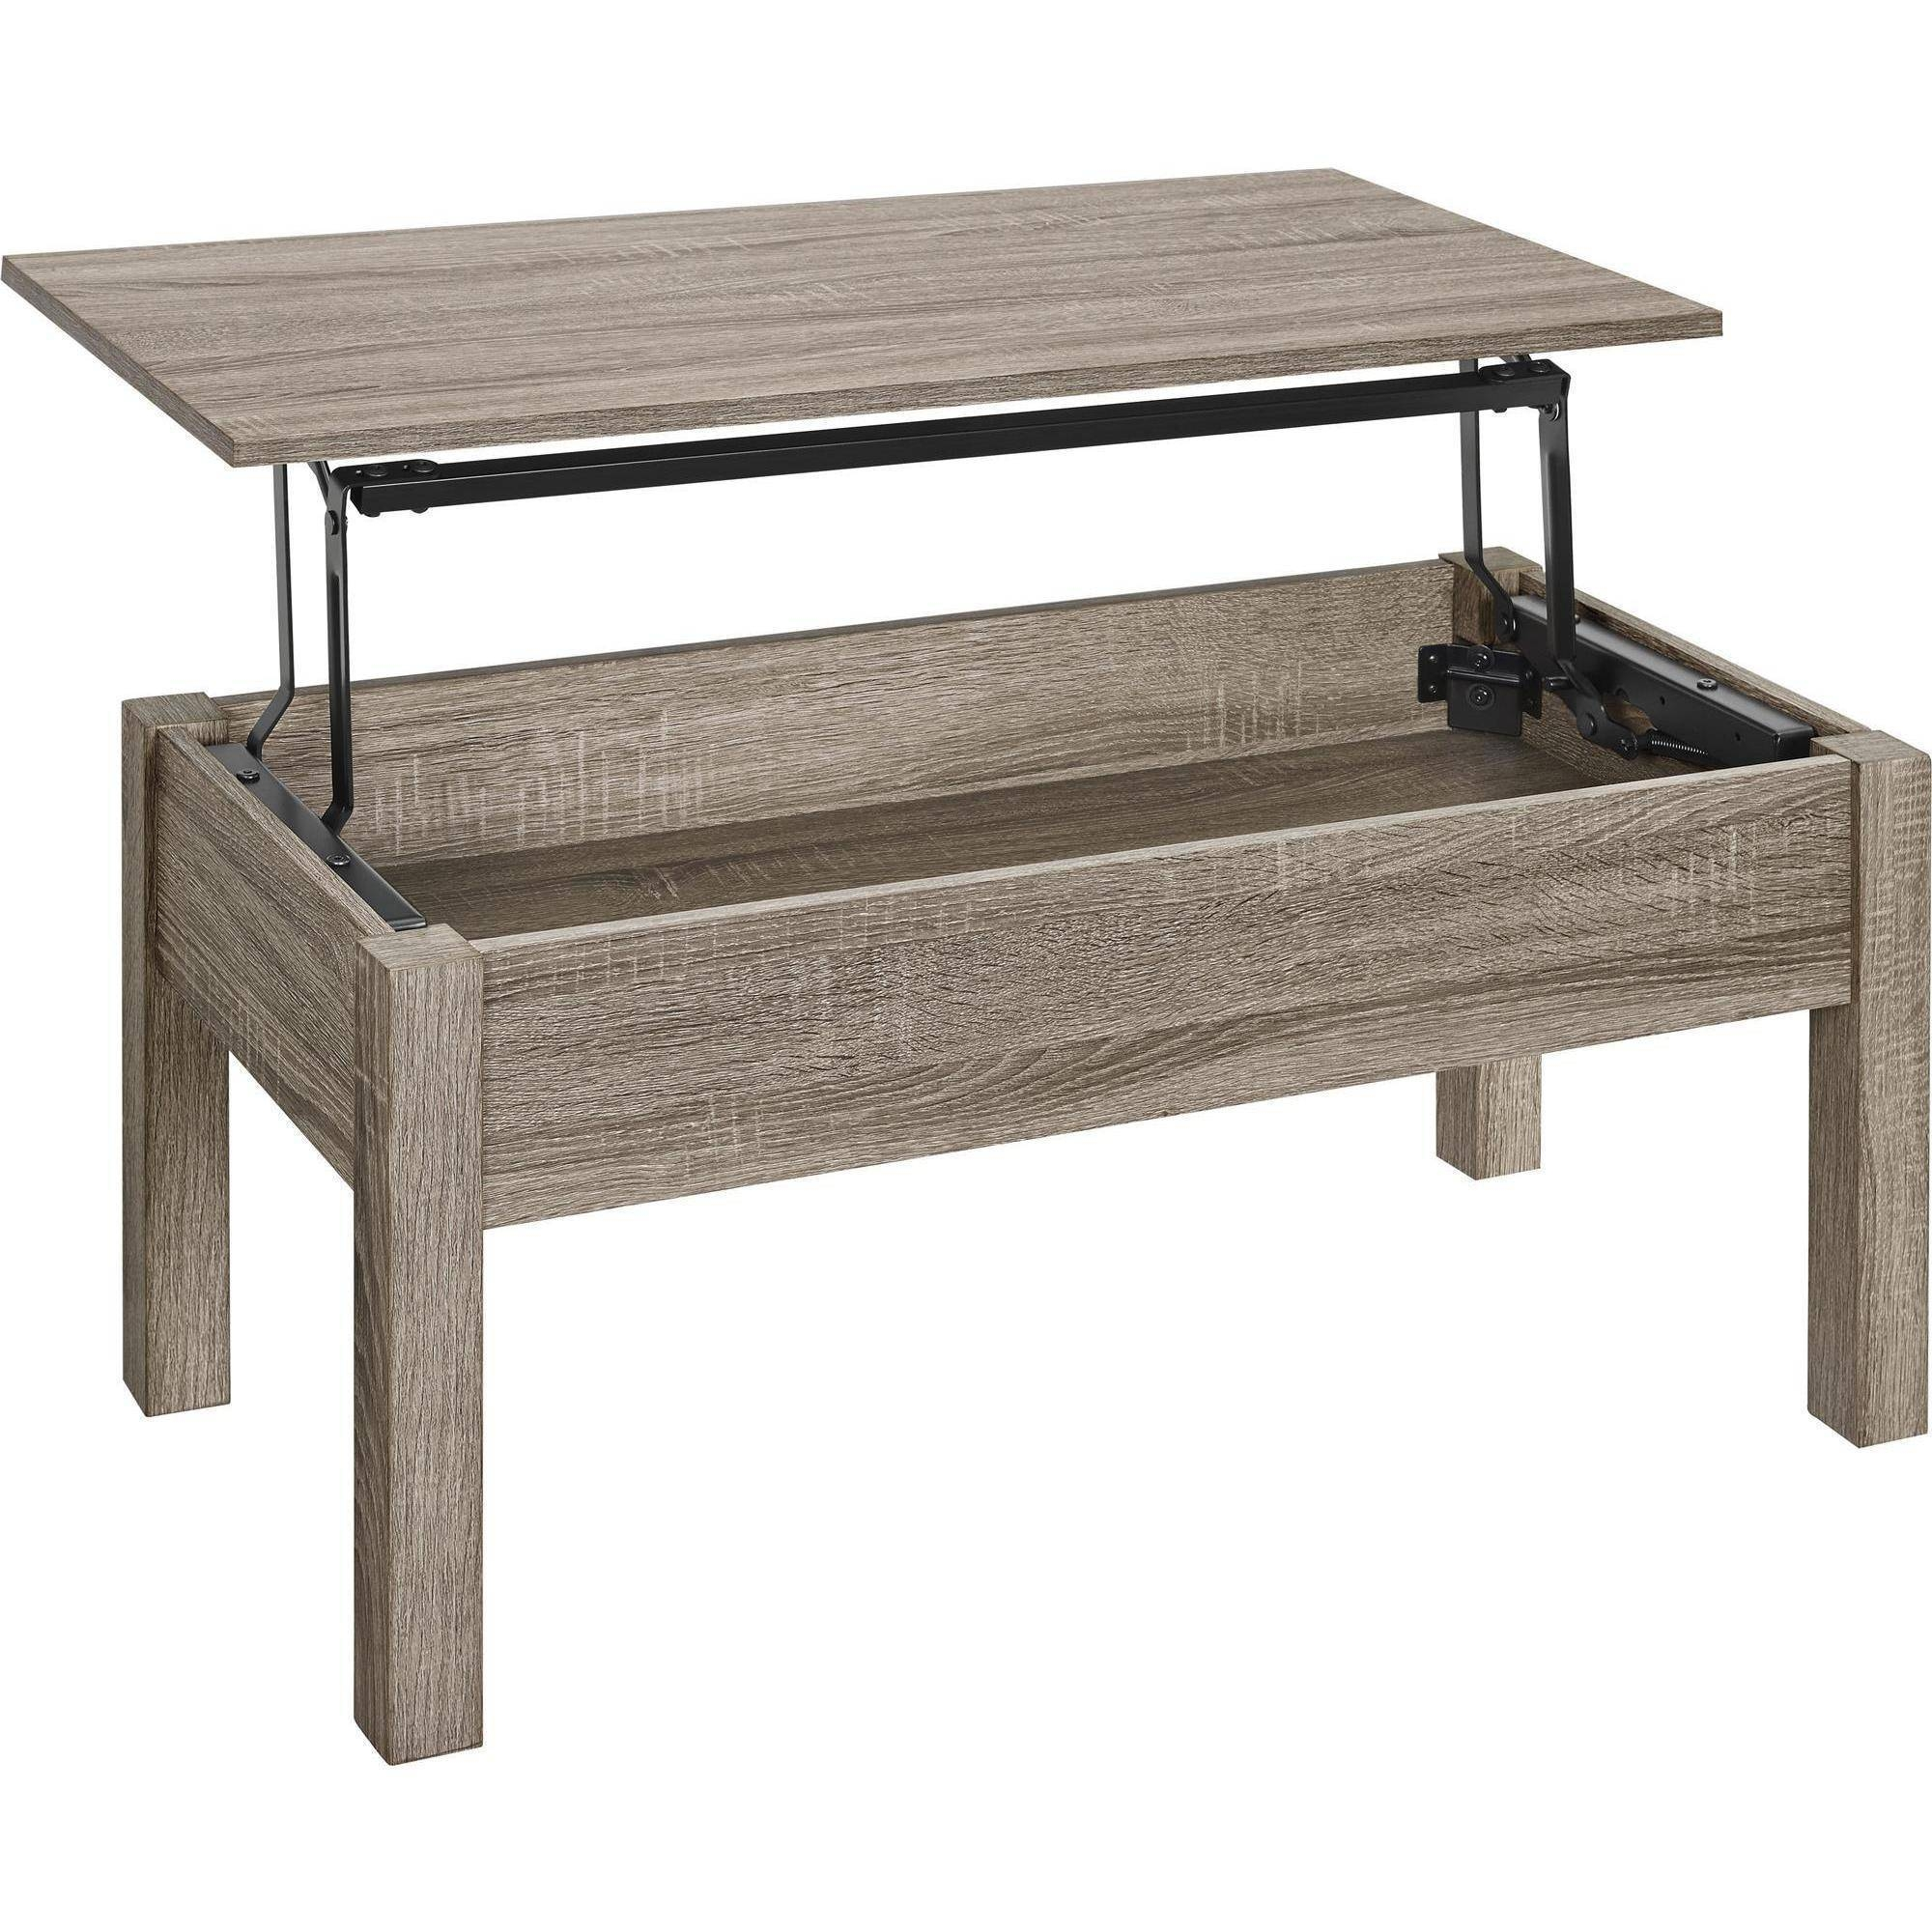 Mainstays Lift-Top Coffee Table, Multiple Colors - Walmart within Top Lift Coffee Tables (Image 18 of 30)